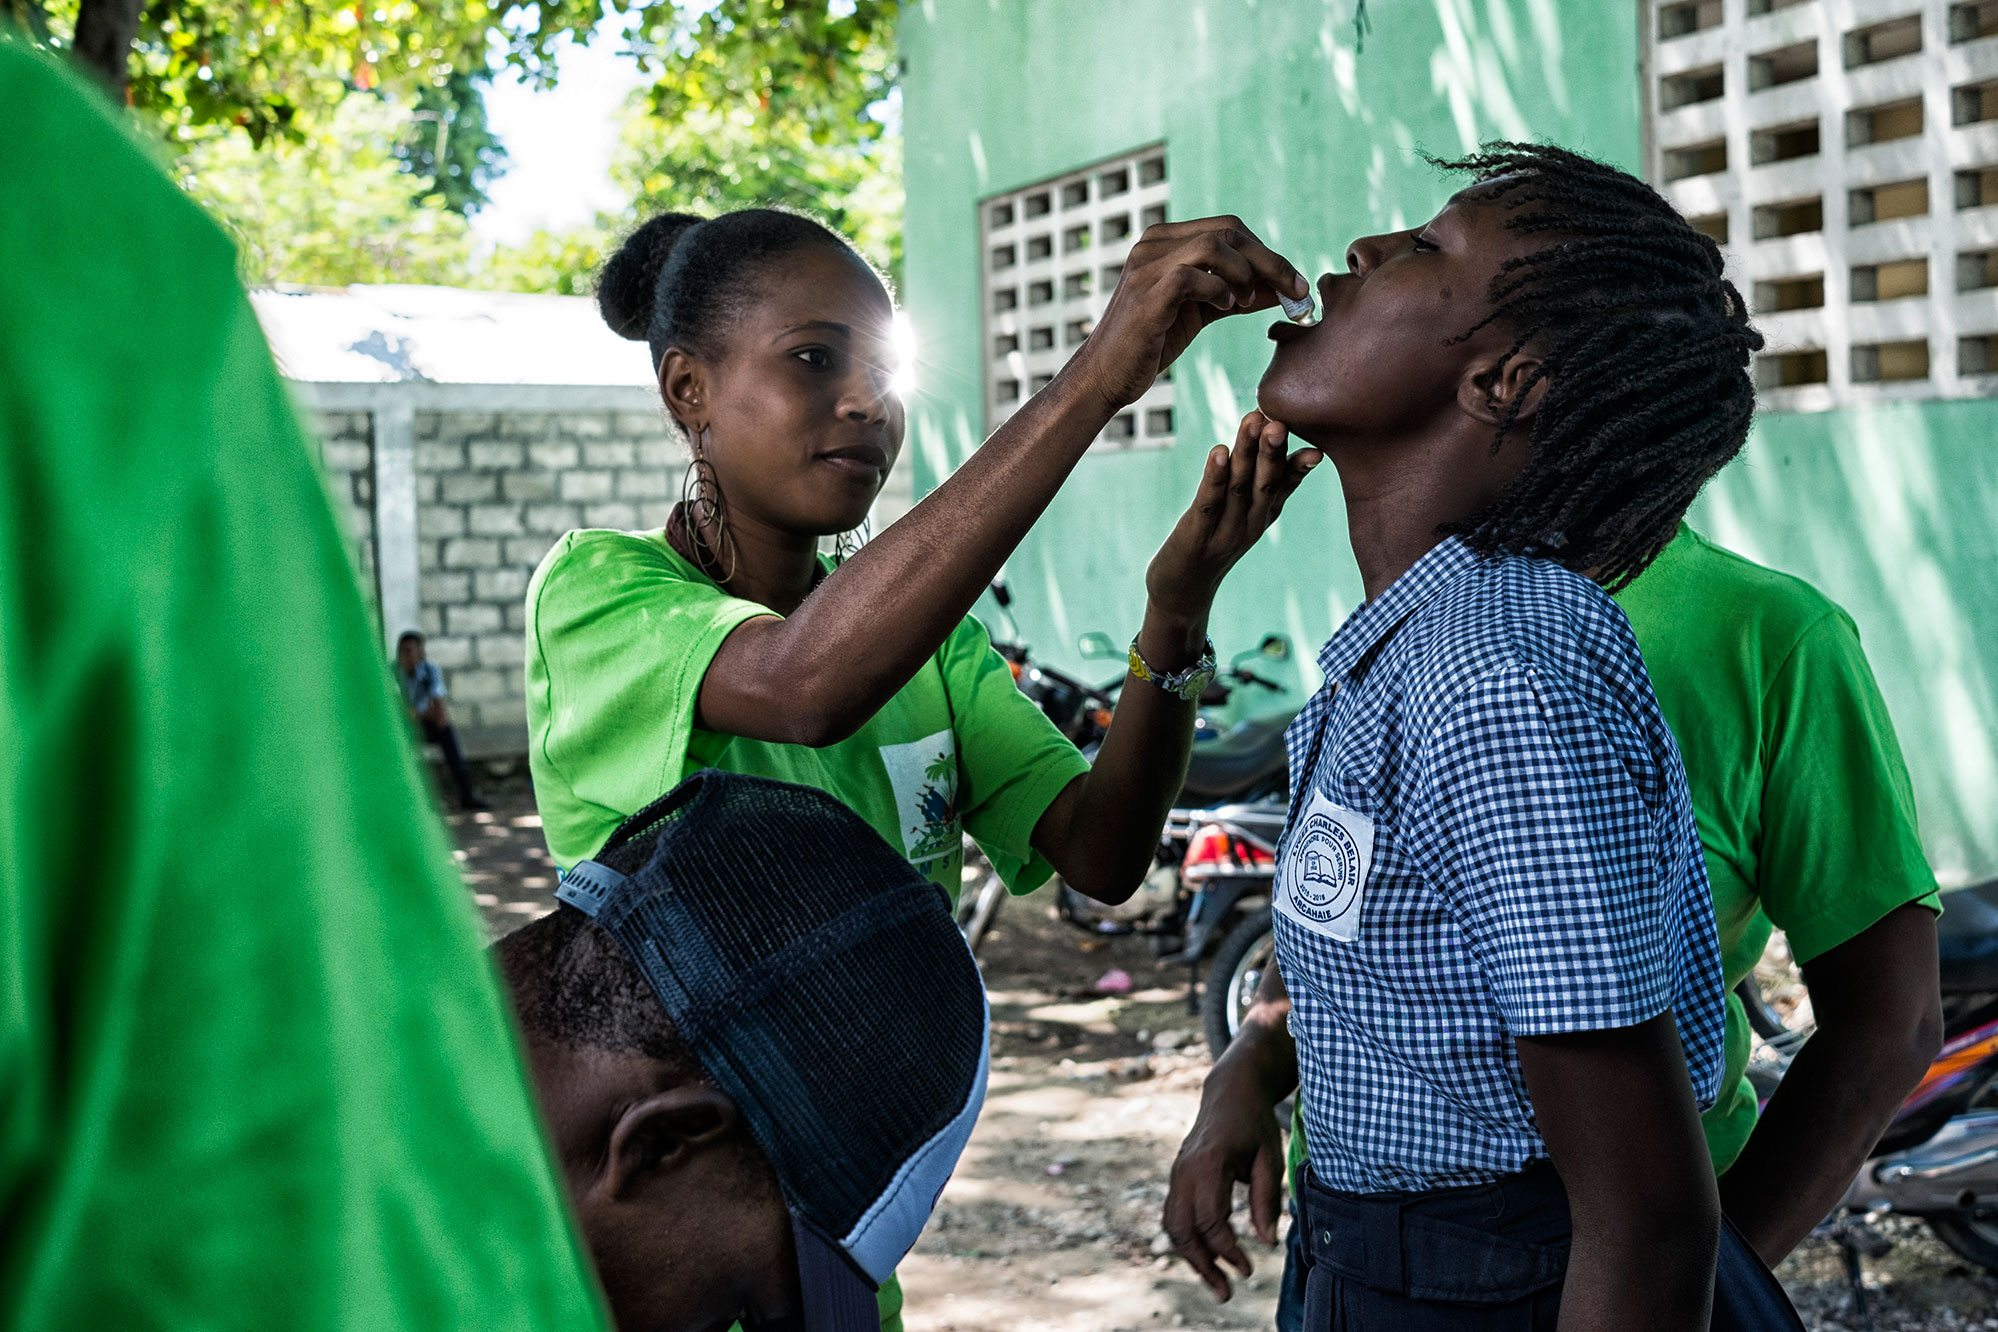 Photo: The Pan American Health Organization-World Health Organization (PAHO/WHO), UNICEF and Haiti's Ministry of Health launched in Archaie the first phase of a cholera vaccination campaign targeting 400,000 persons in 2016.